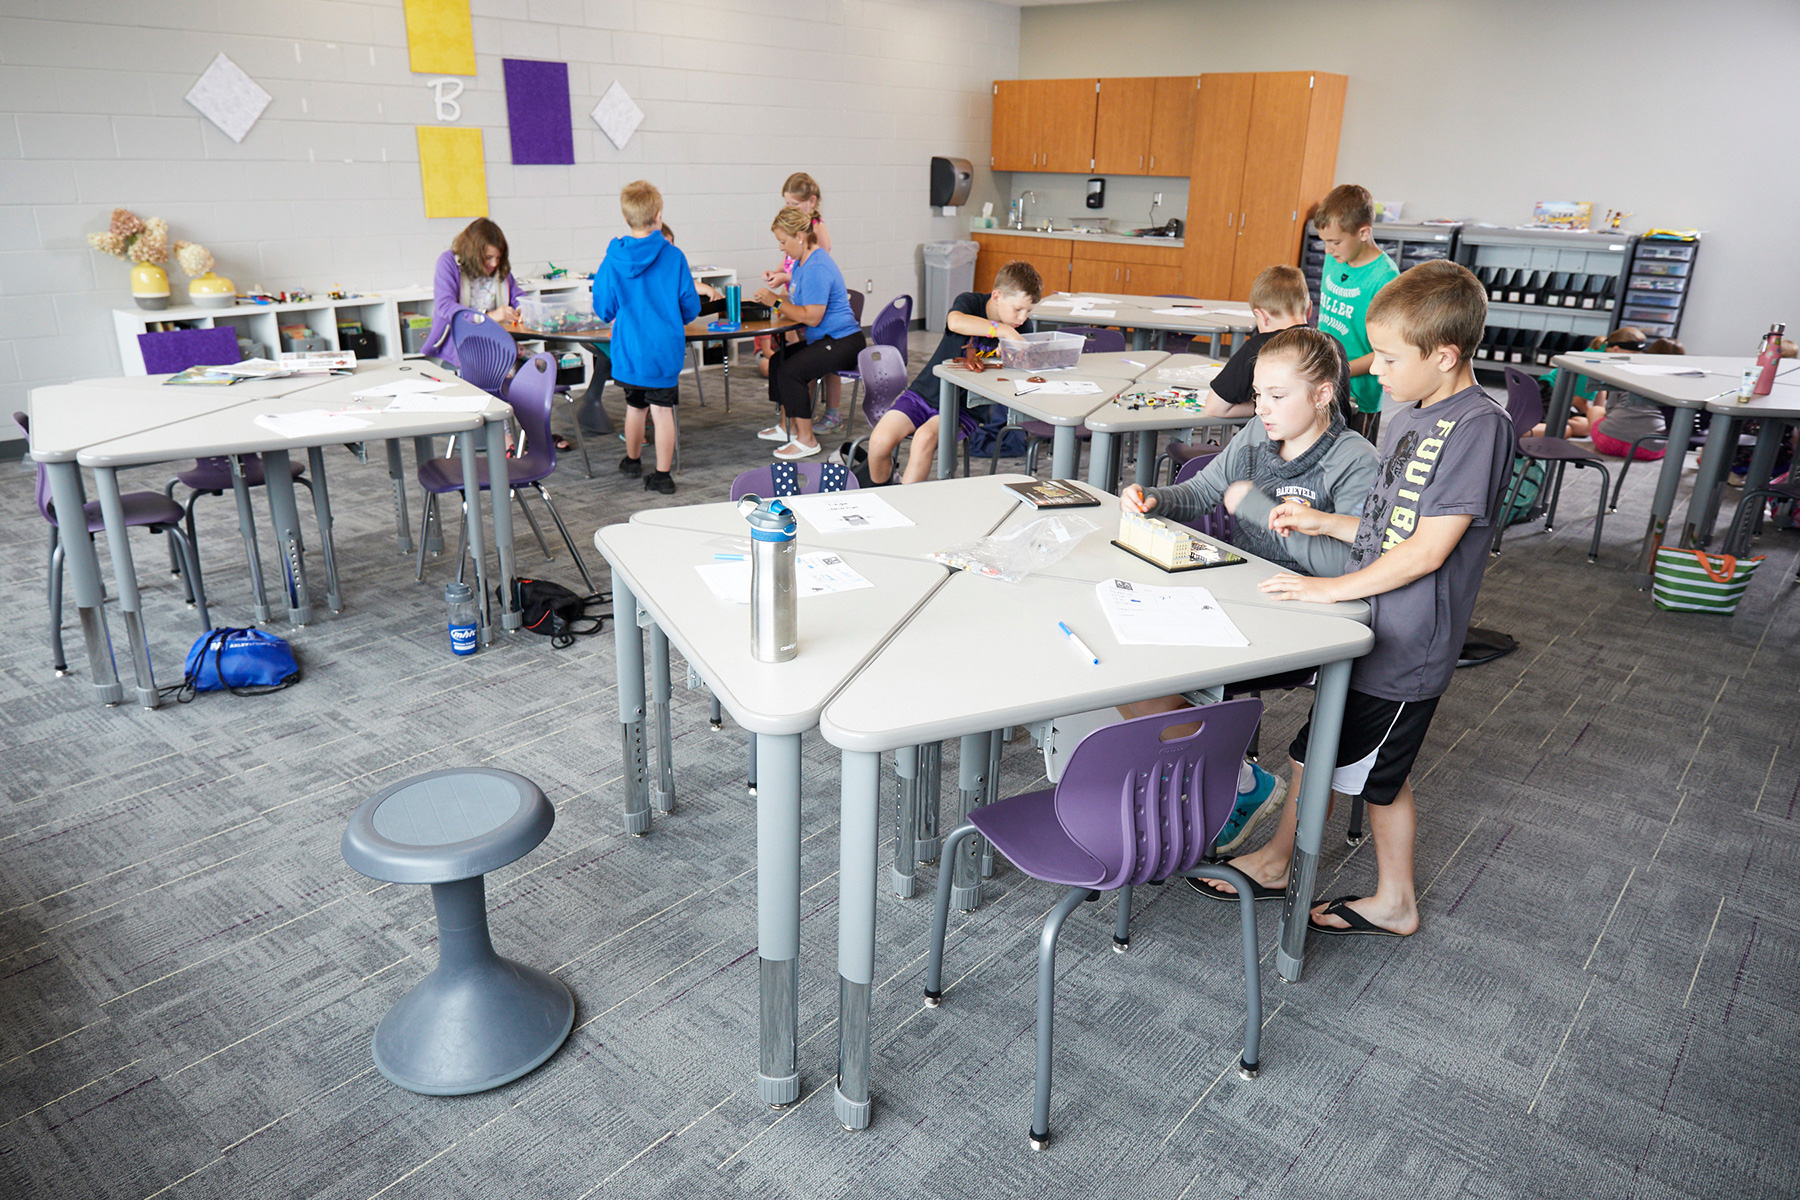 Barneveld students enjoy the new learning space design.